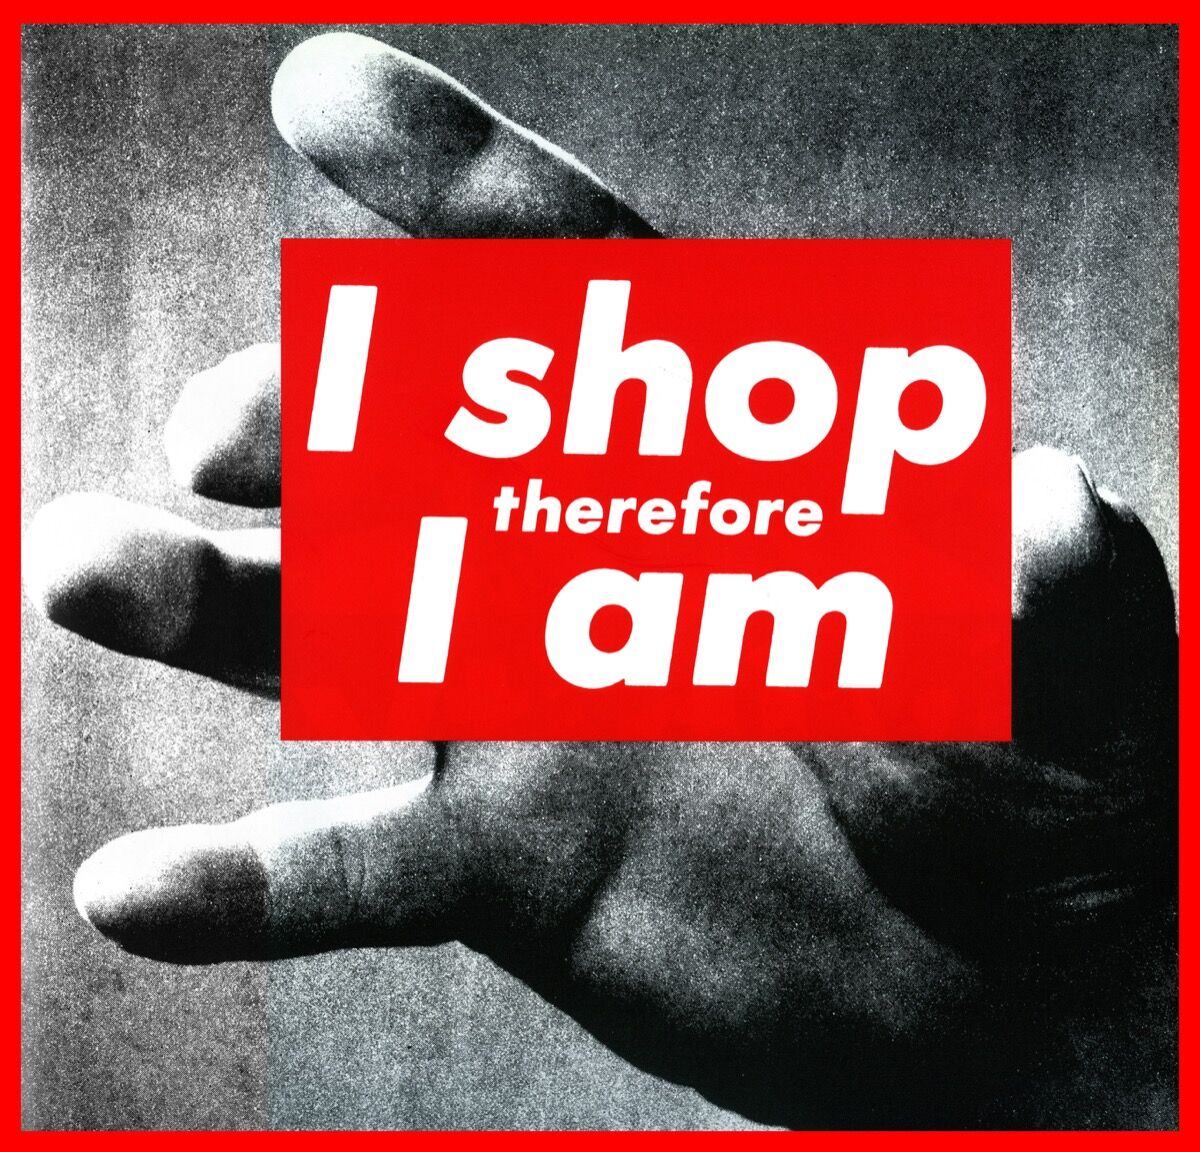 Barbara Kruger,  Untitled (I shop therefore I am) , 1987. © Barbara Kruger. Courtesy of Mary Boone Gallery, New York.